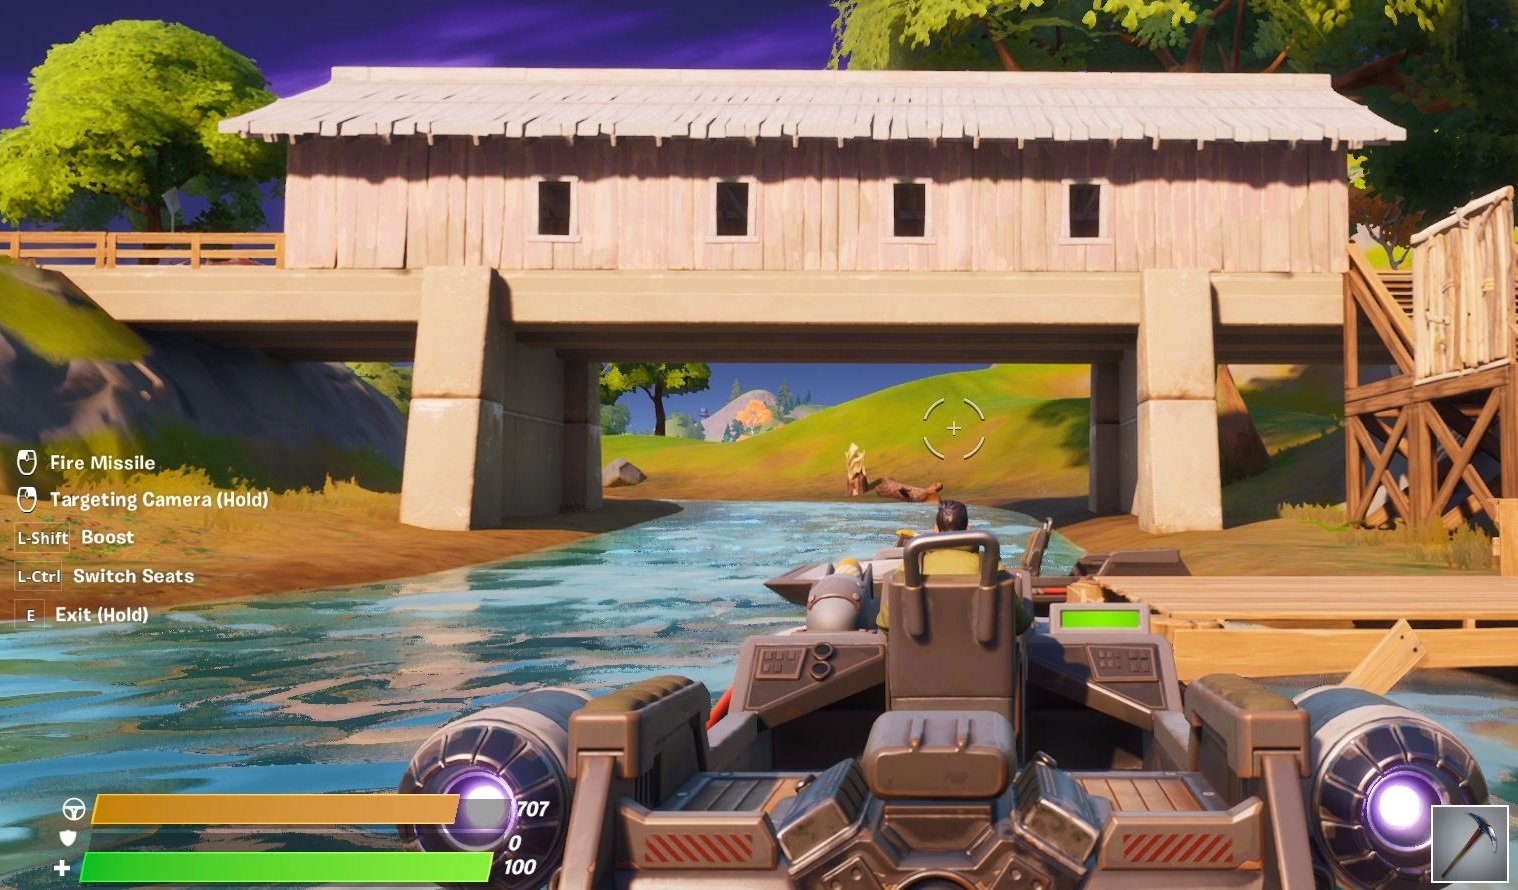 You can technically drive boats on land in Fortnite Chapter 2, but doing so will slowly damage your boat.